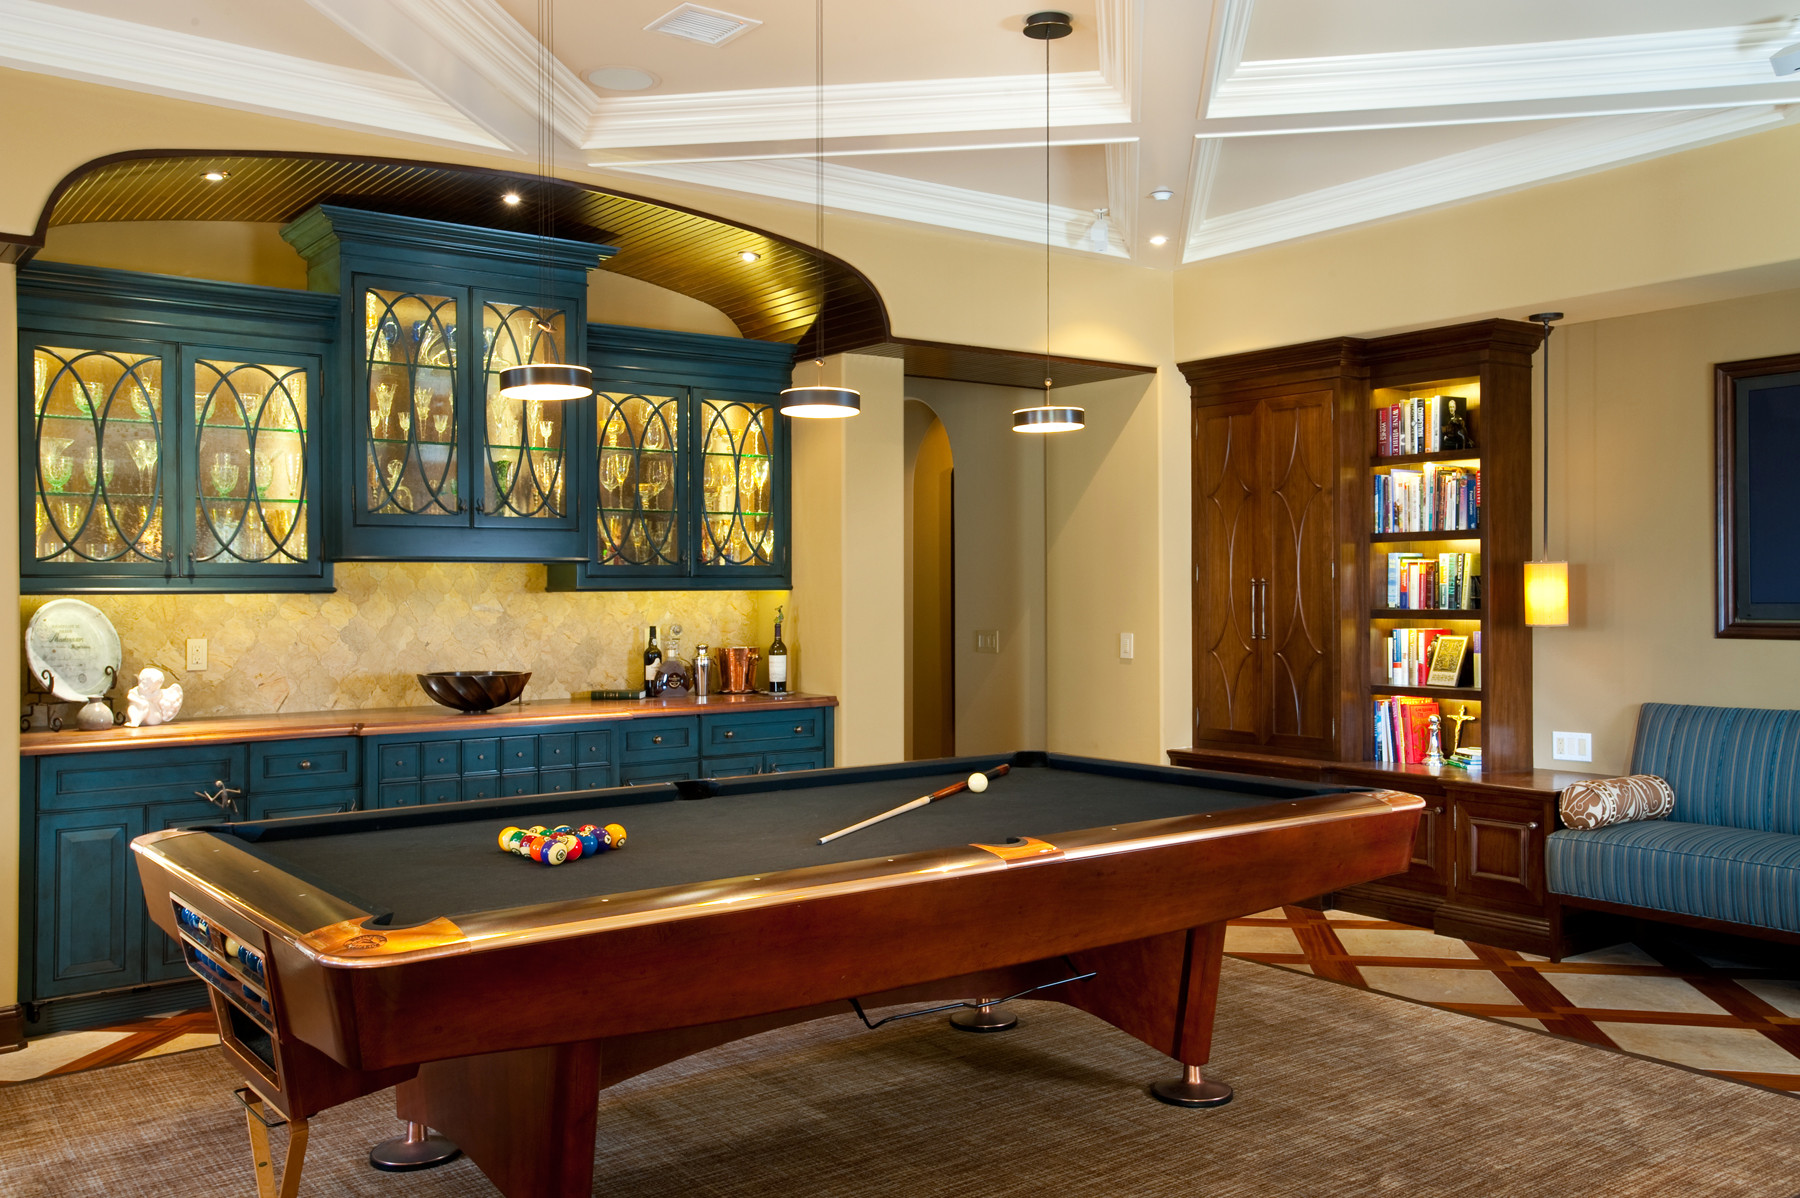 75 Beautiful Traditional Game Room Pictures Ideas February 2021 Houzz